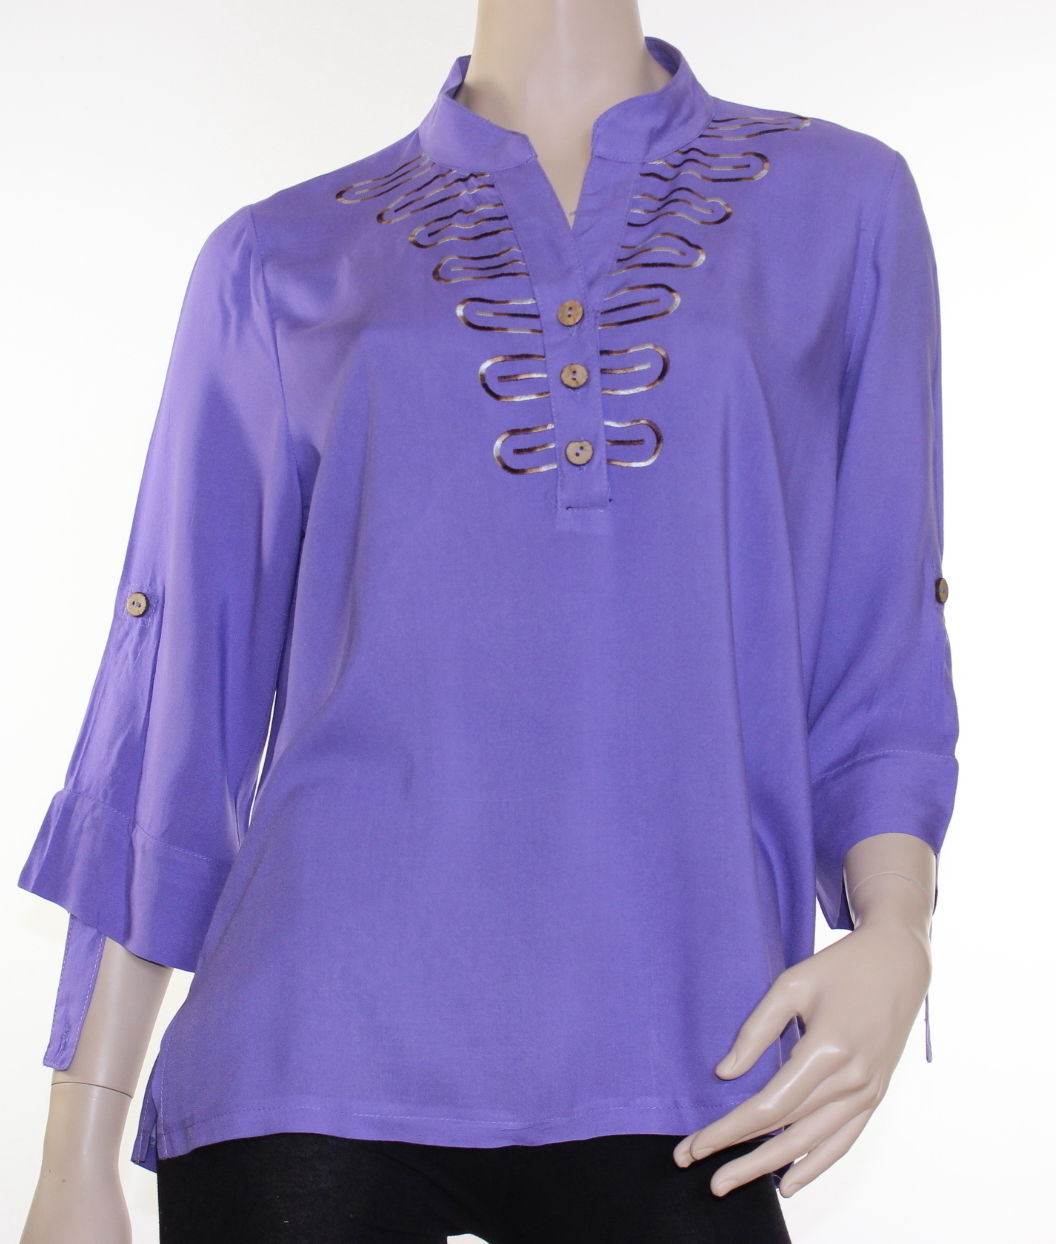 Elegant Blouse Top Shirt Embroidered Size 10 12 14 16